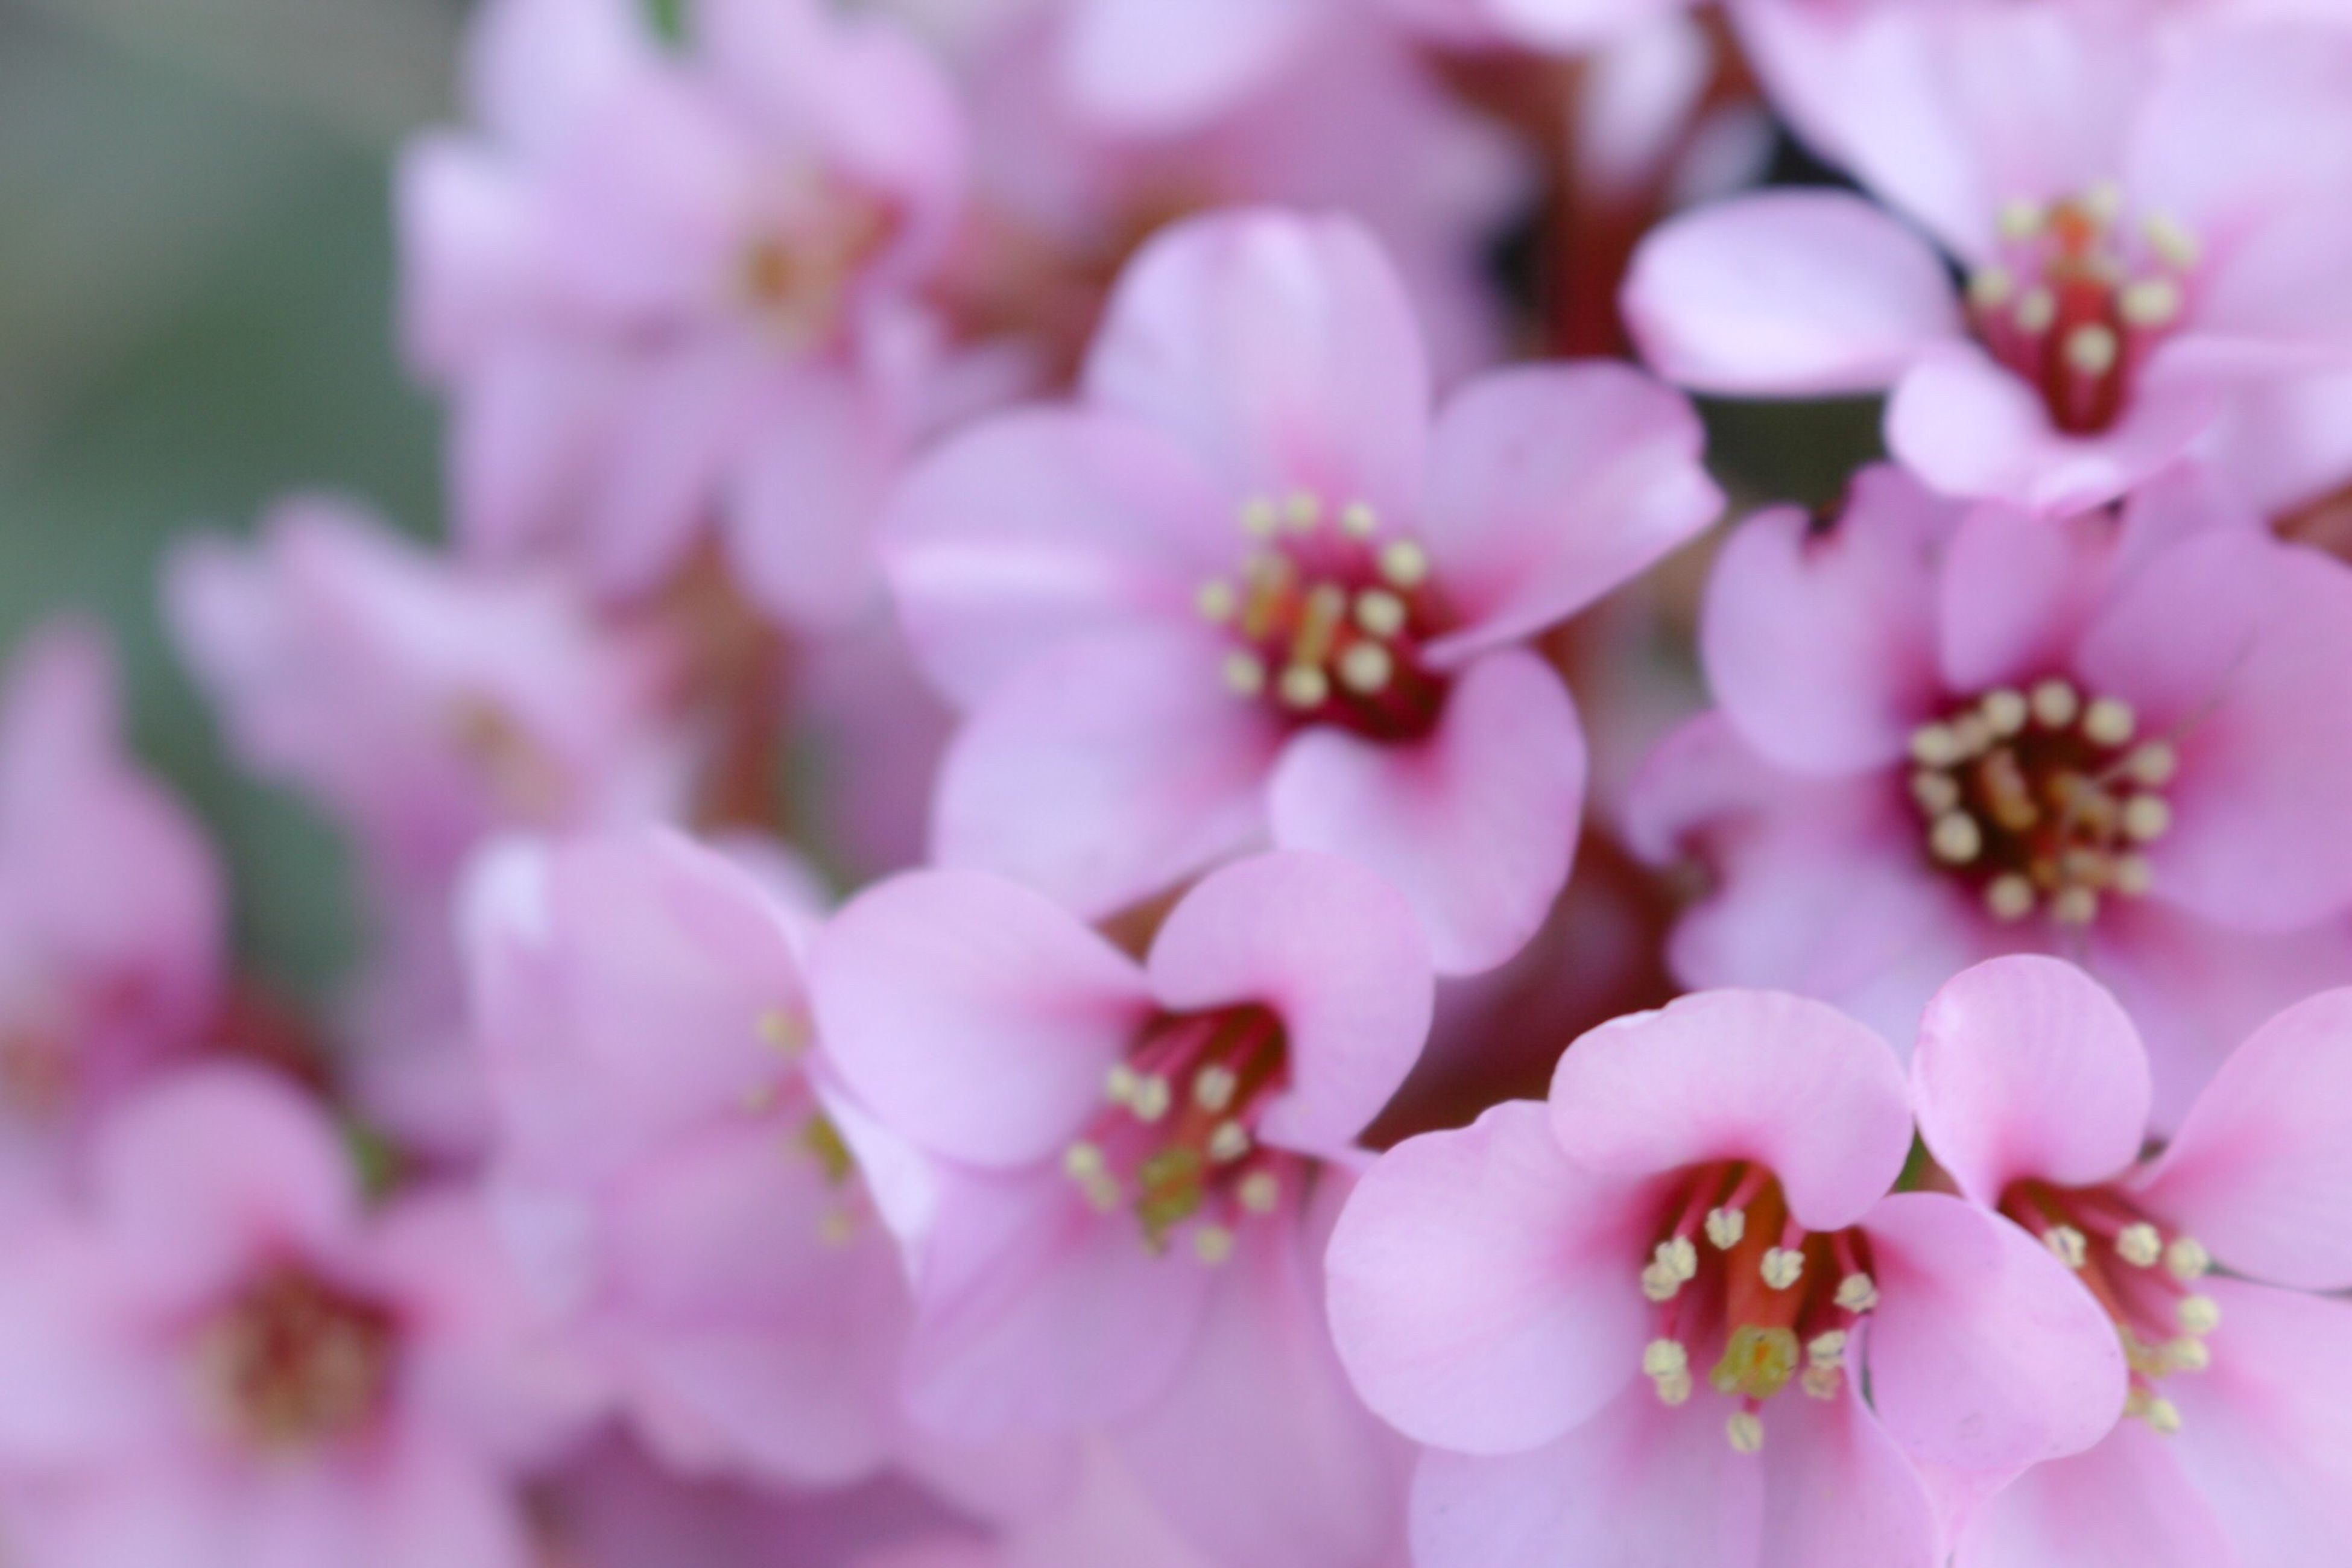 flower, freshness, fragility, growth, petal, pink color, beauty in nature, close-up, nature, flower head, focus on foreground, blossom, blooming, pink, stamen, in bloom, branch, selective focus, springtime, pollen